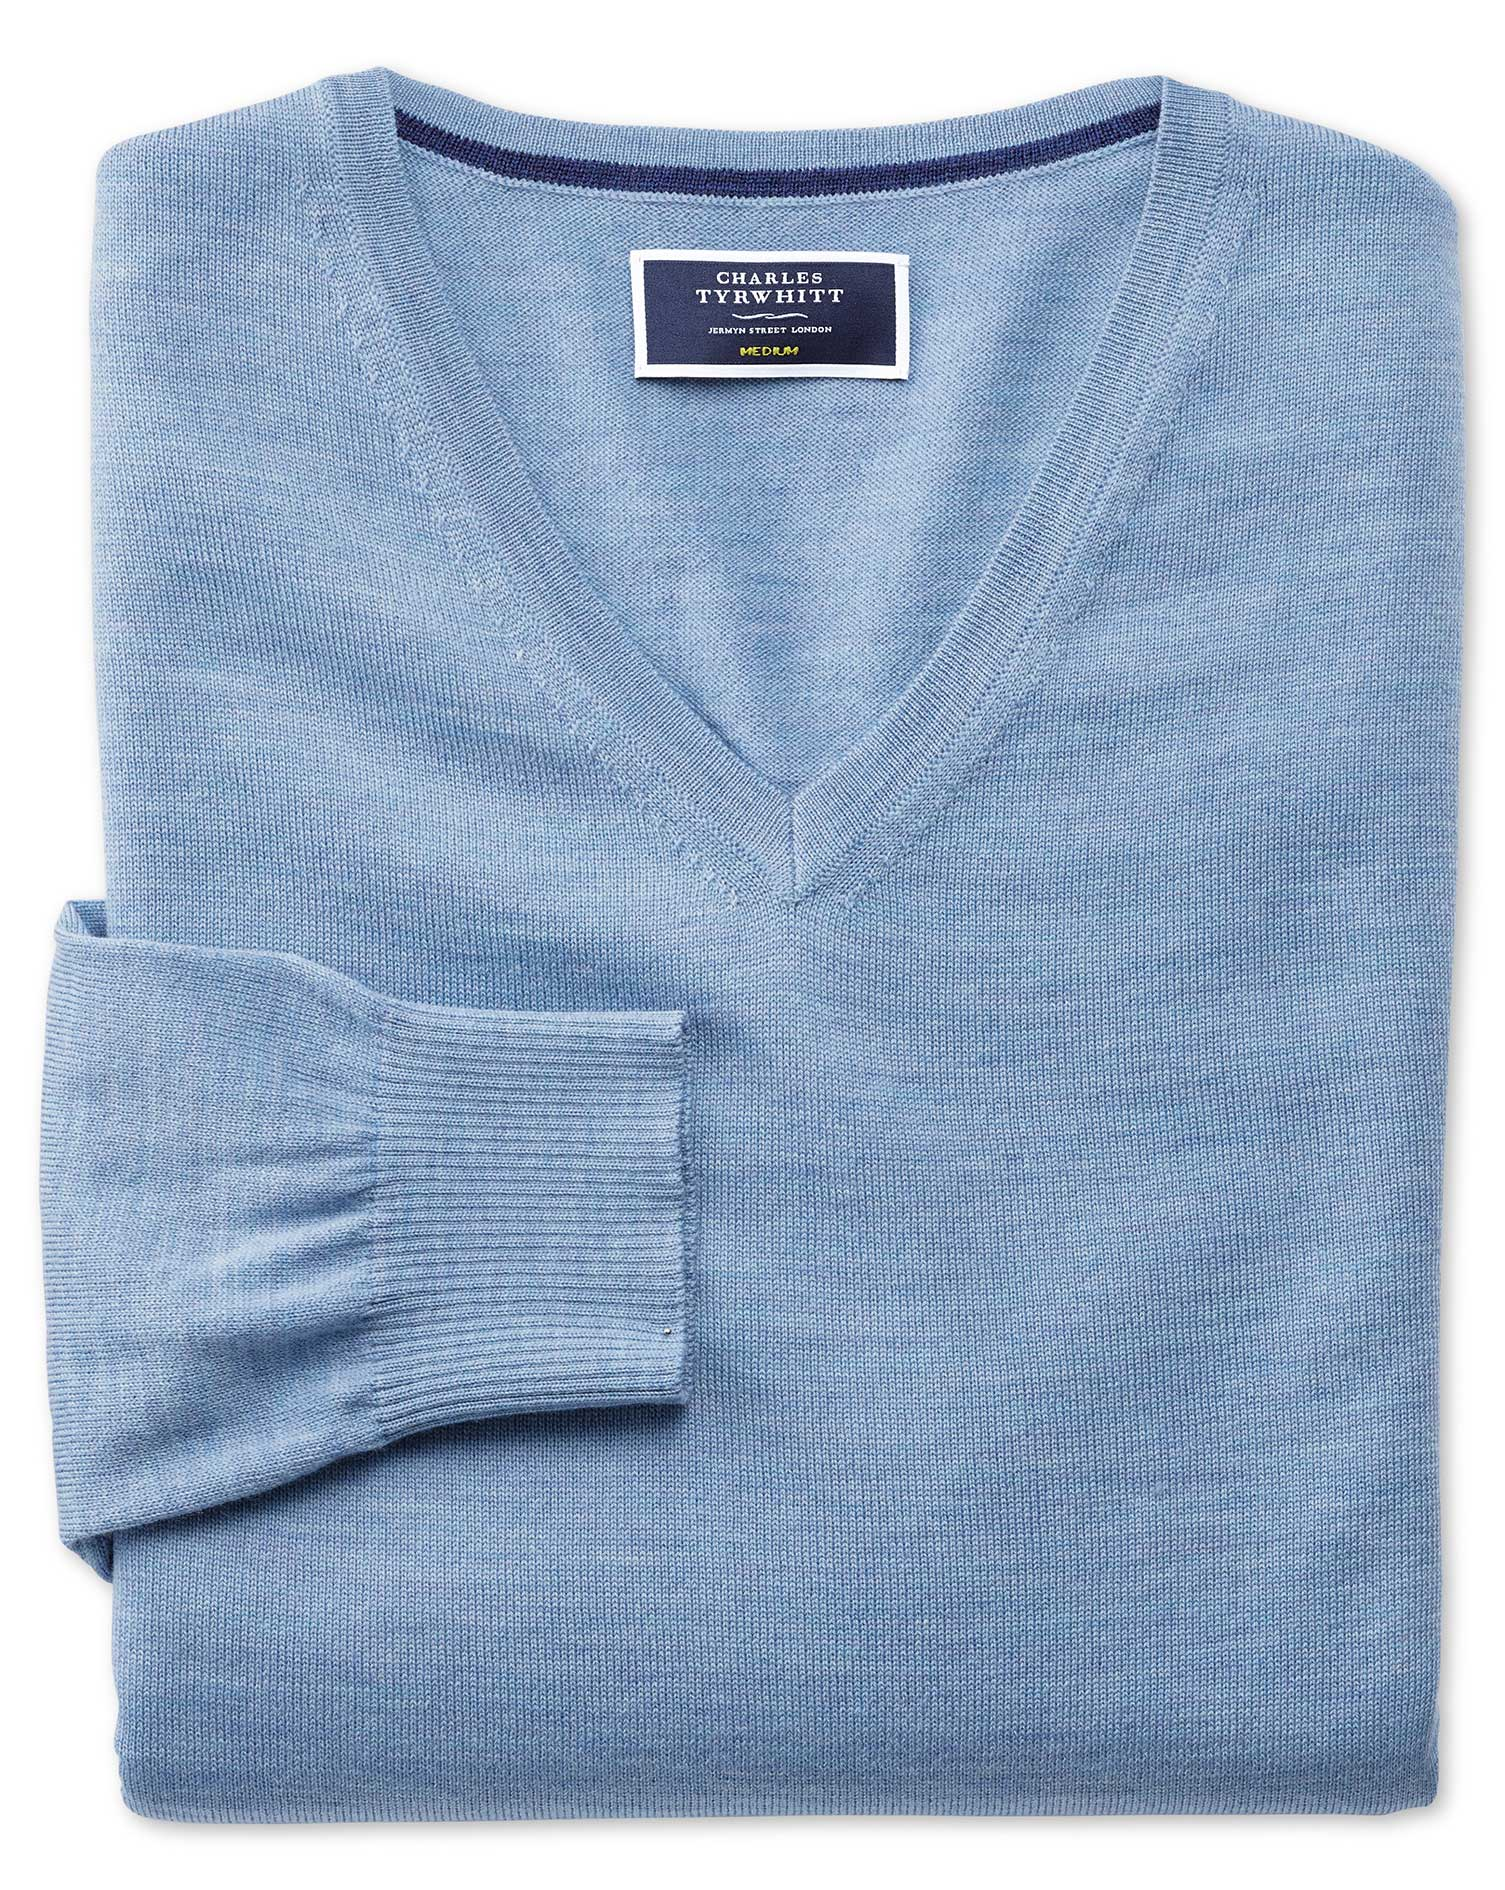 Sky Merino Wool V-Neck Jumper Size Large by Charles Tyrwhitt